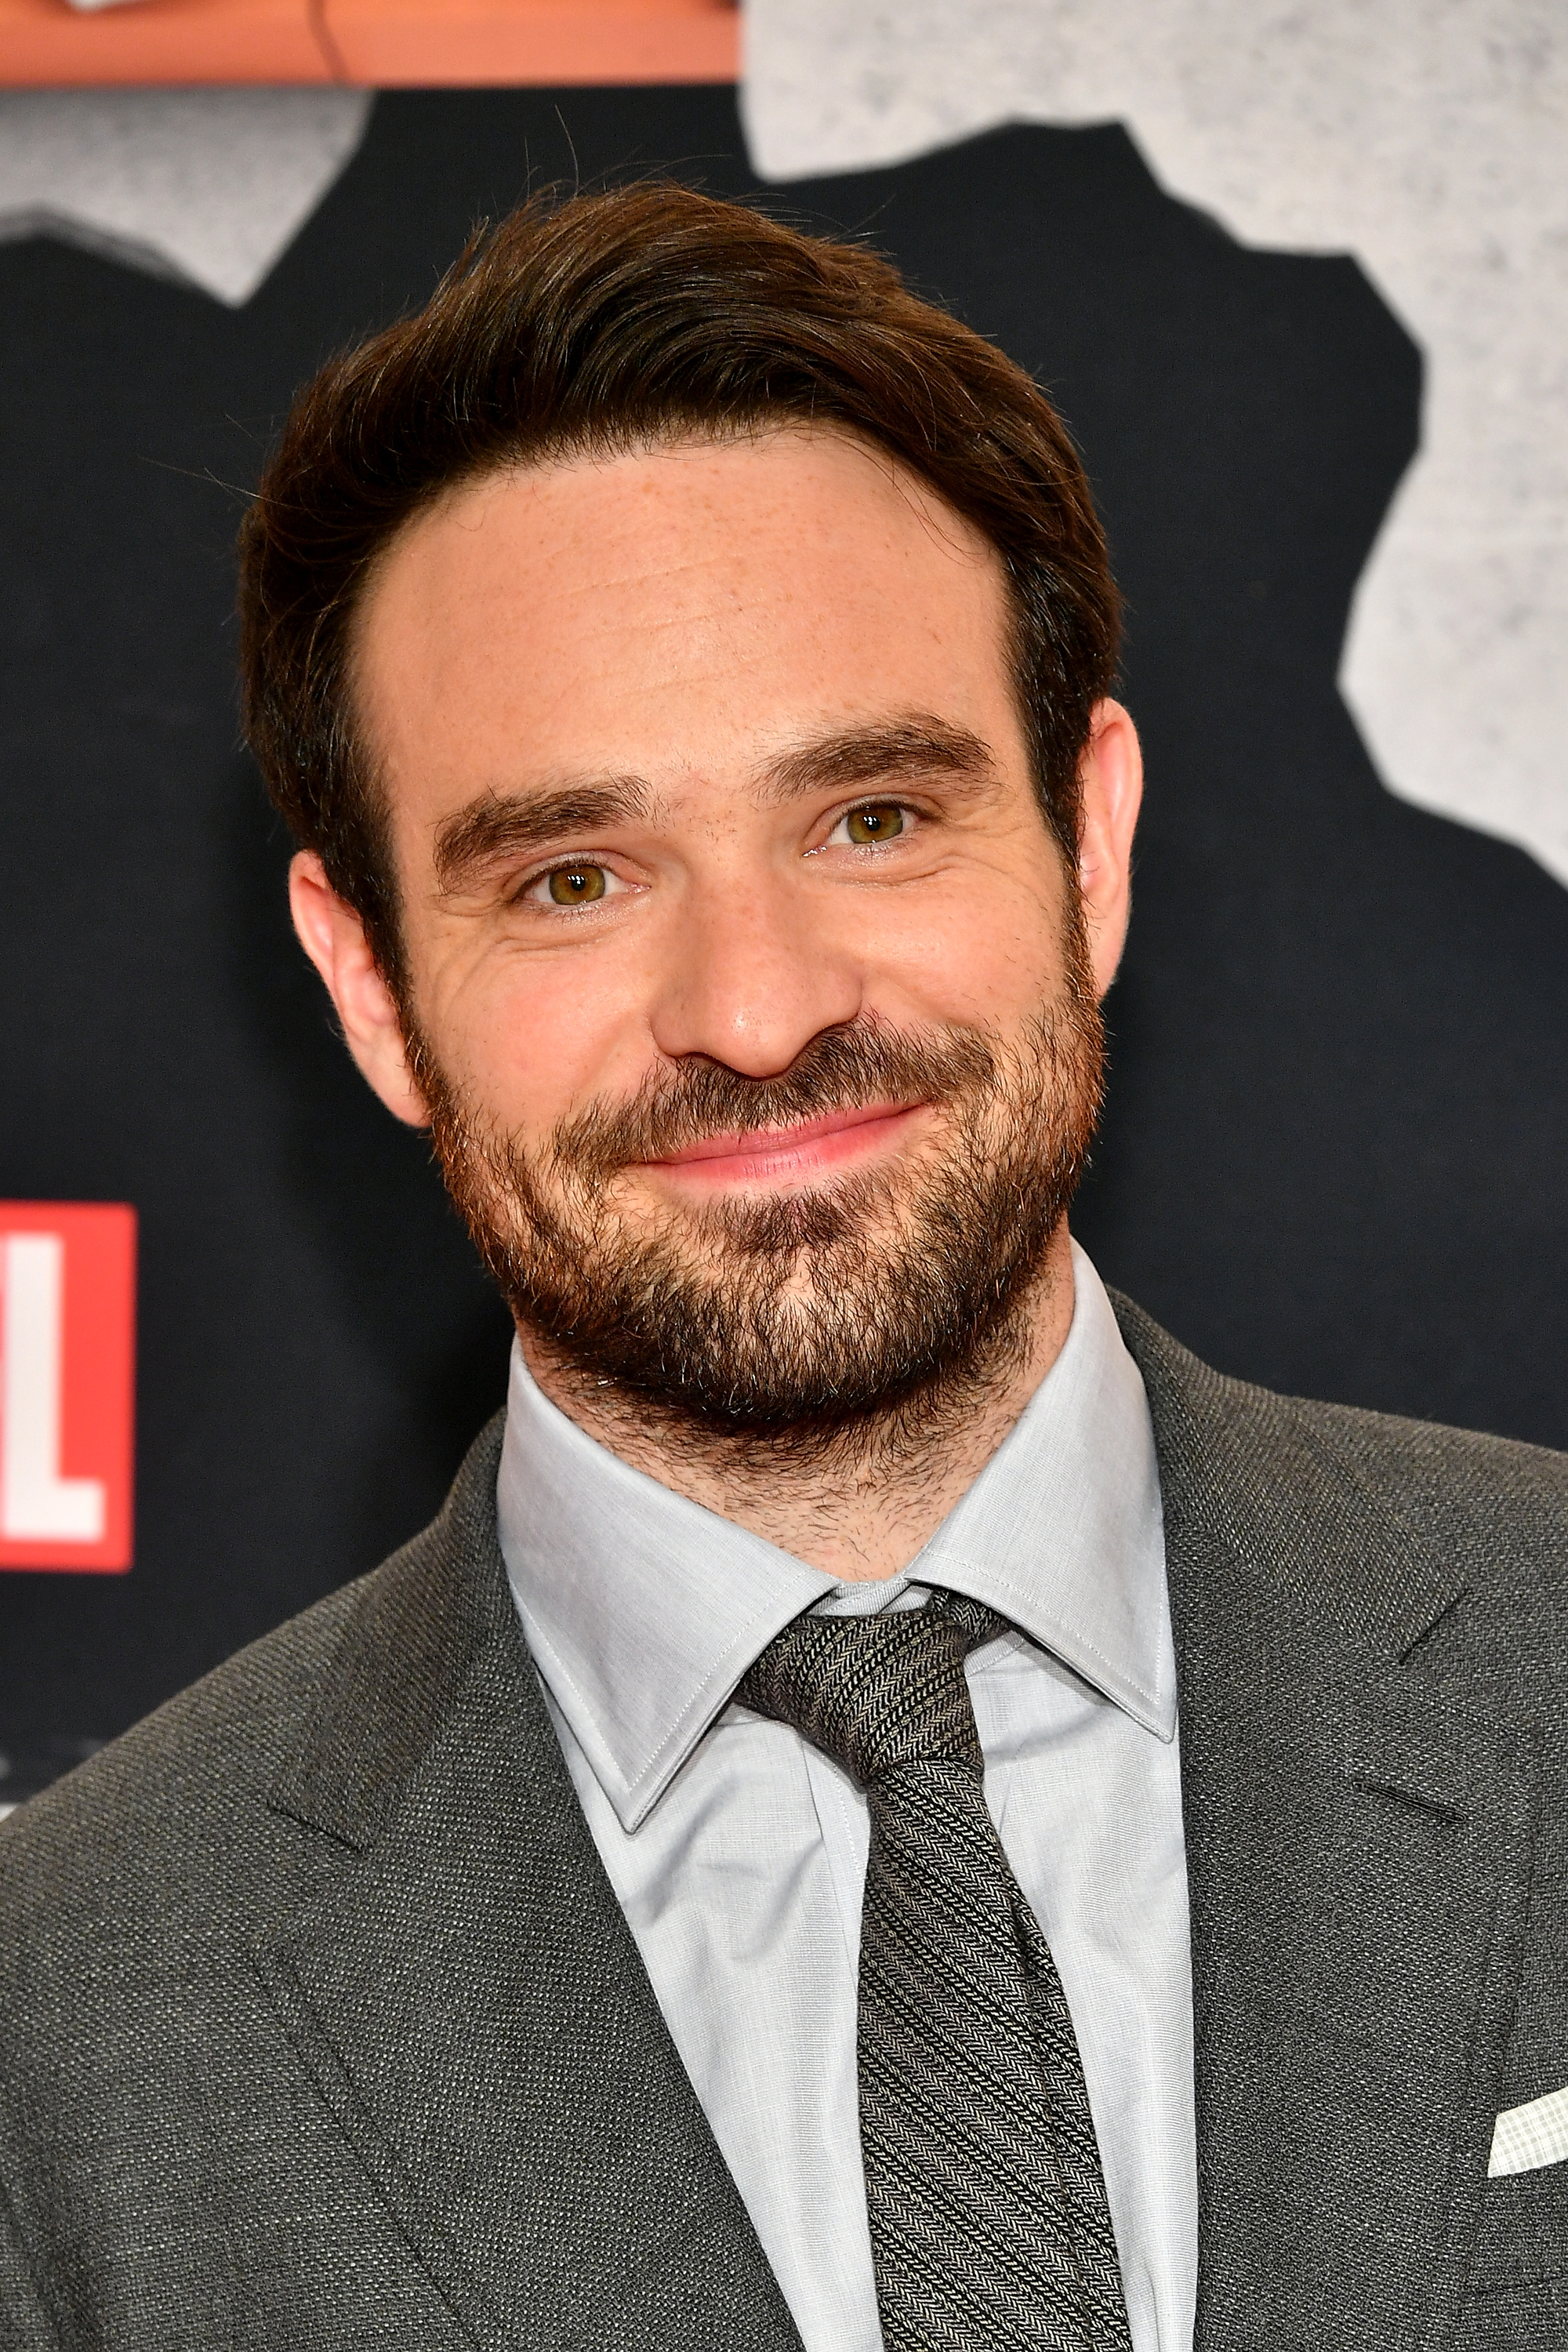 Charlie Cox attends the 'Marvel's The Defenders' New York Premiere at Tribeca Performing Arts Center on July 31, 2017 in New York City.